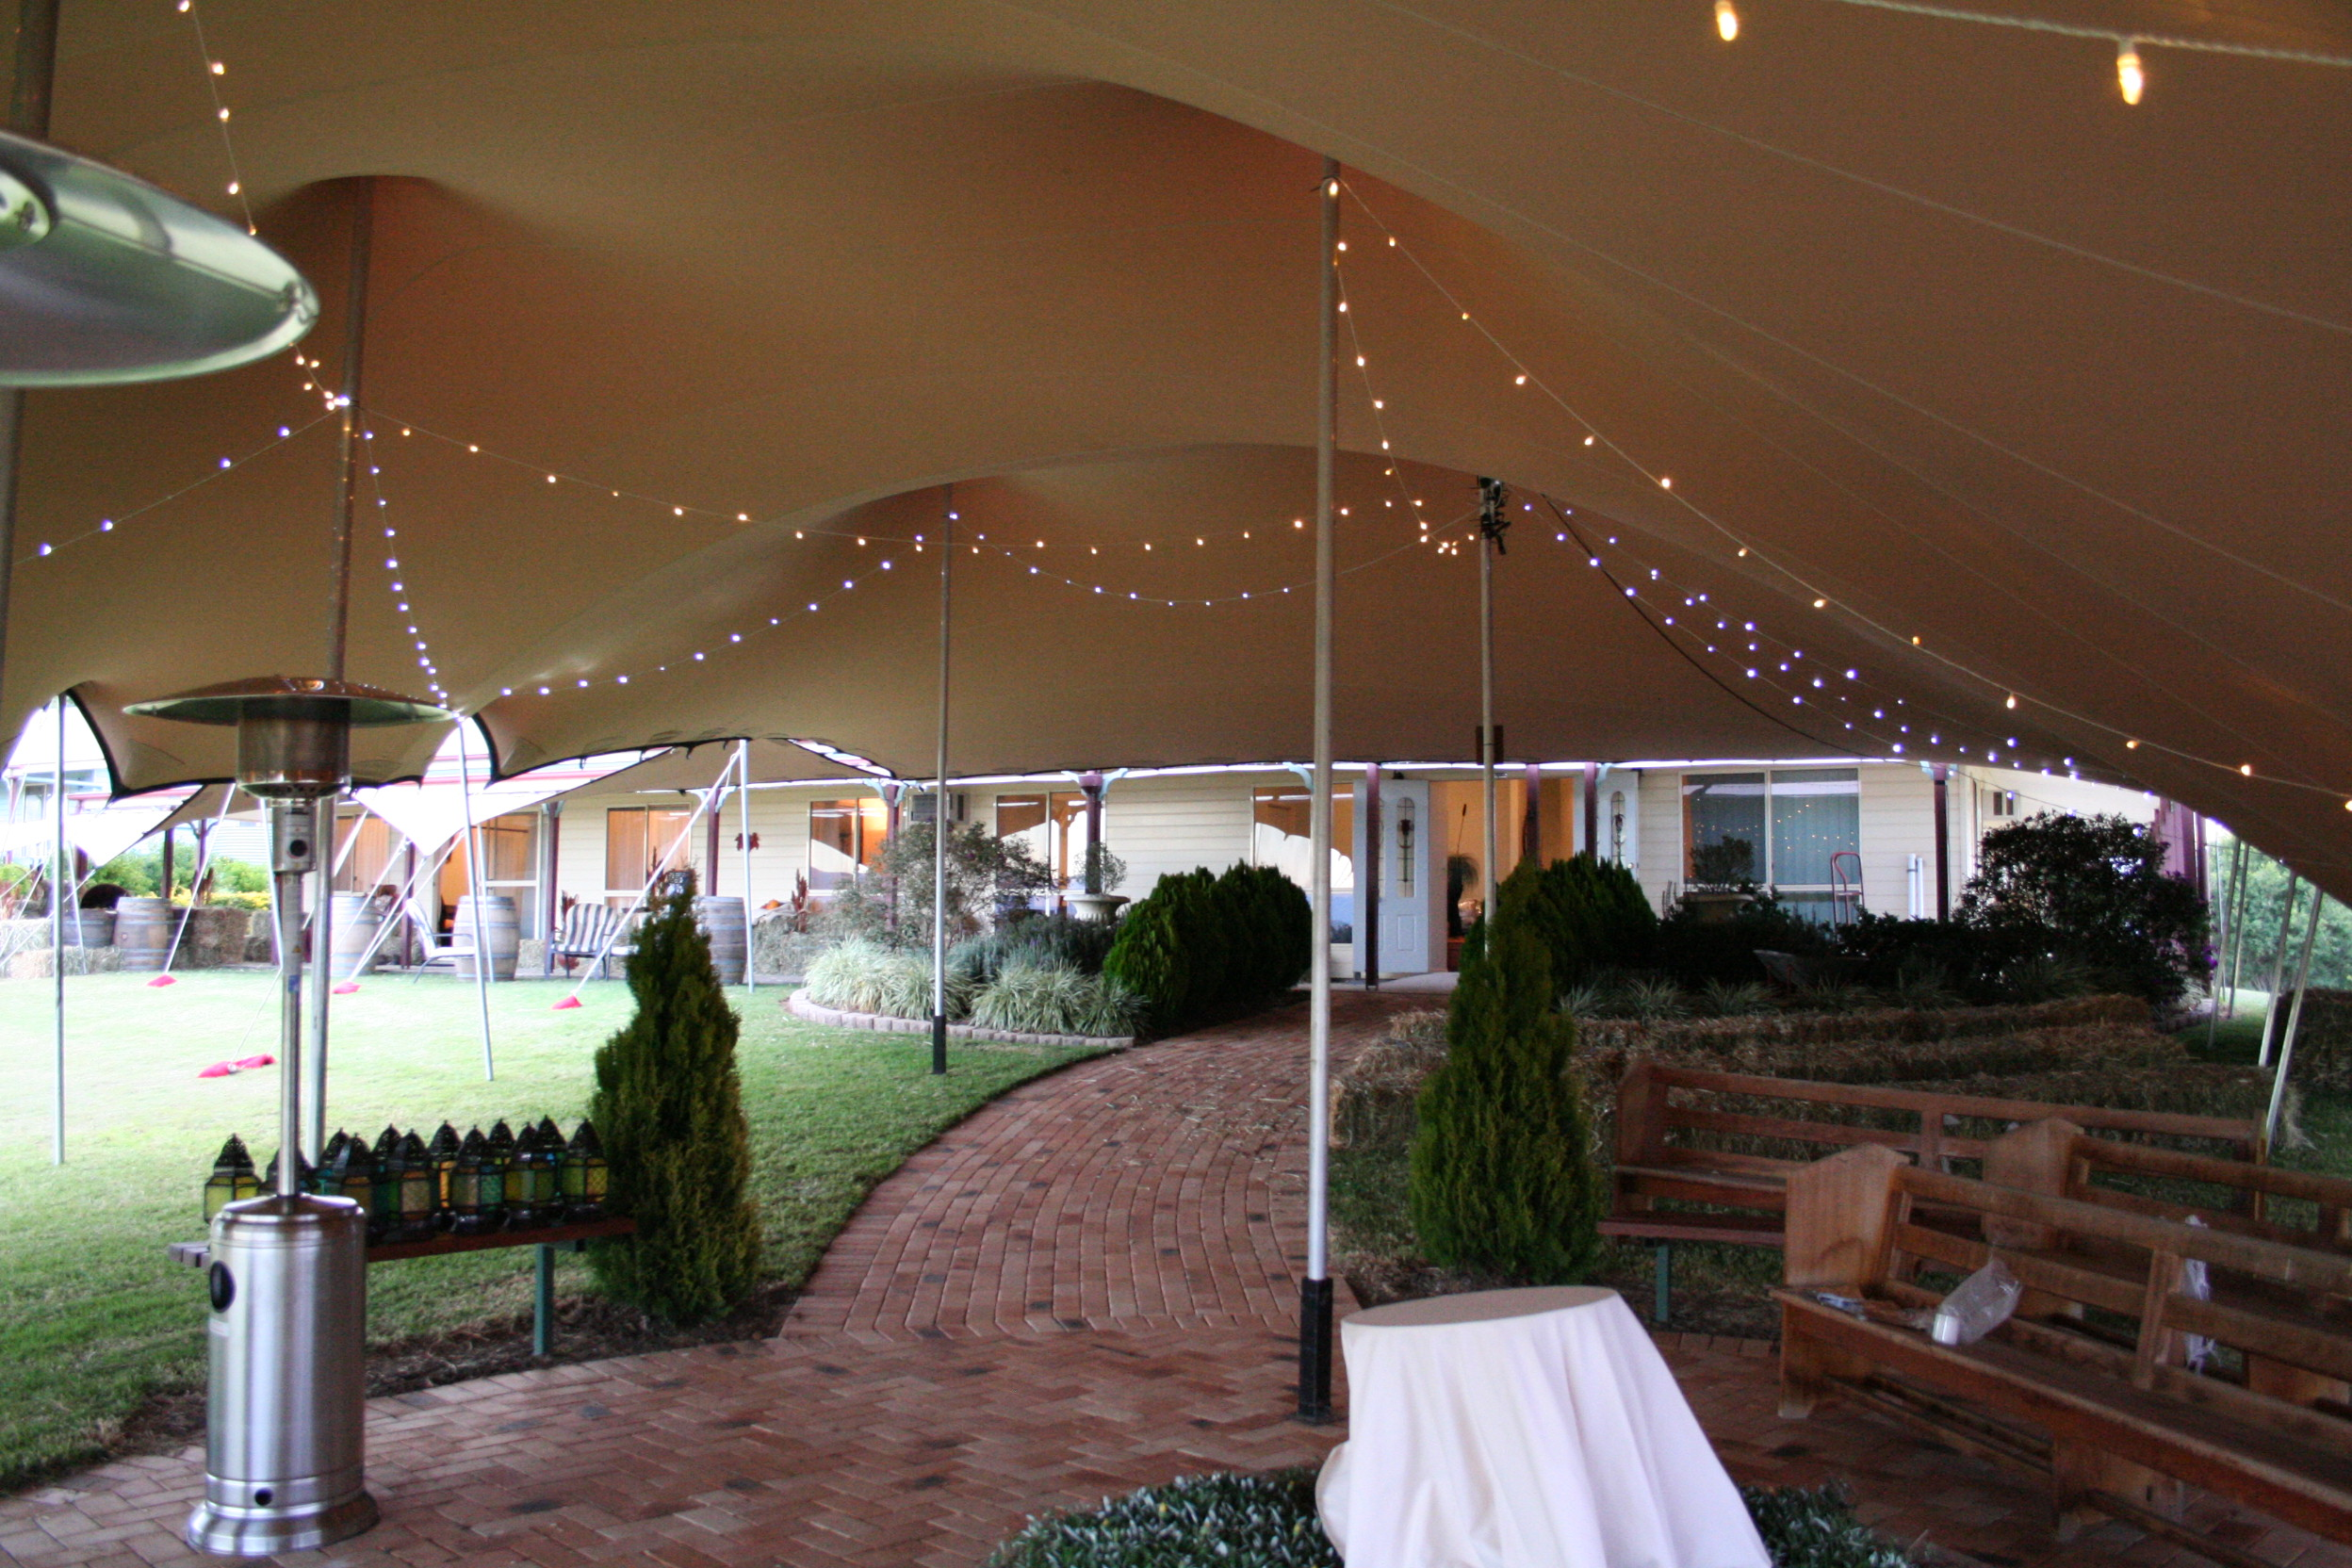 Bedouin Stretch Tent for weddings and parties